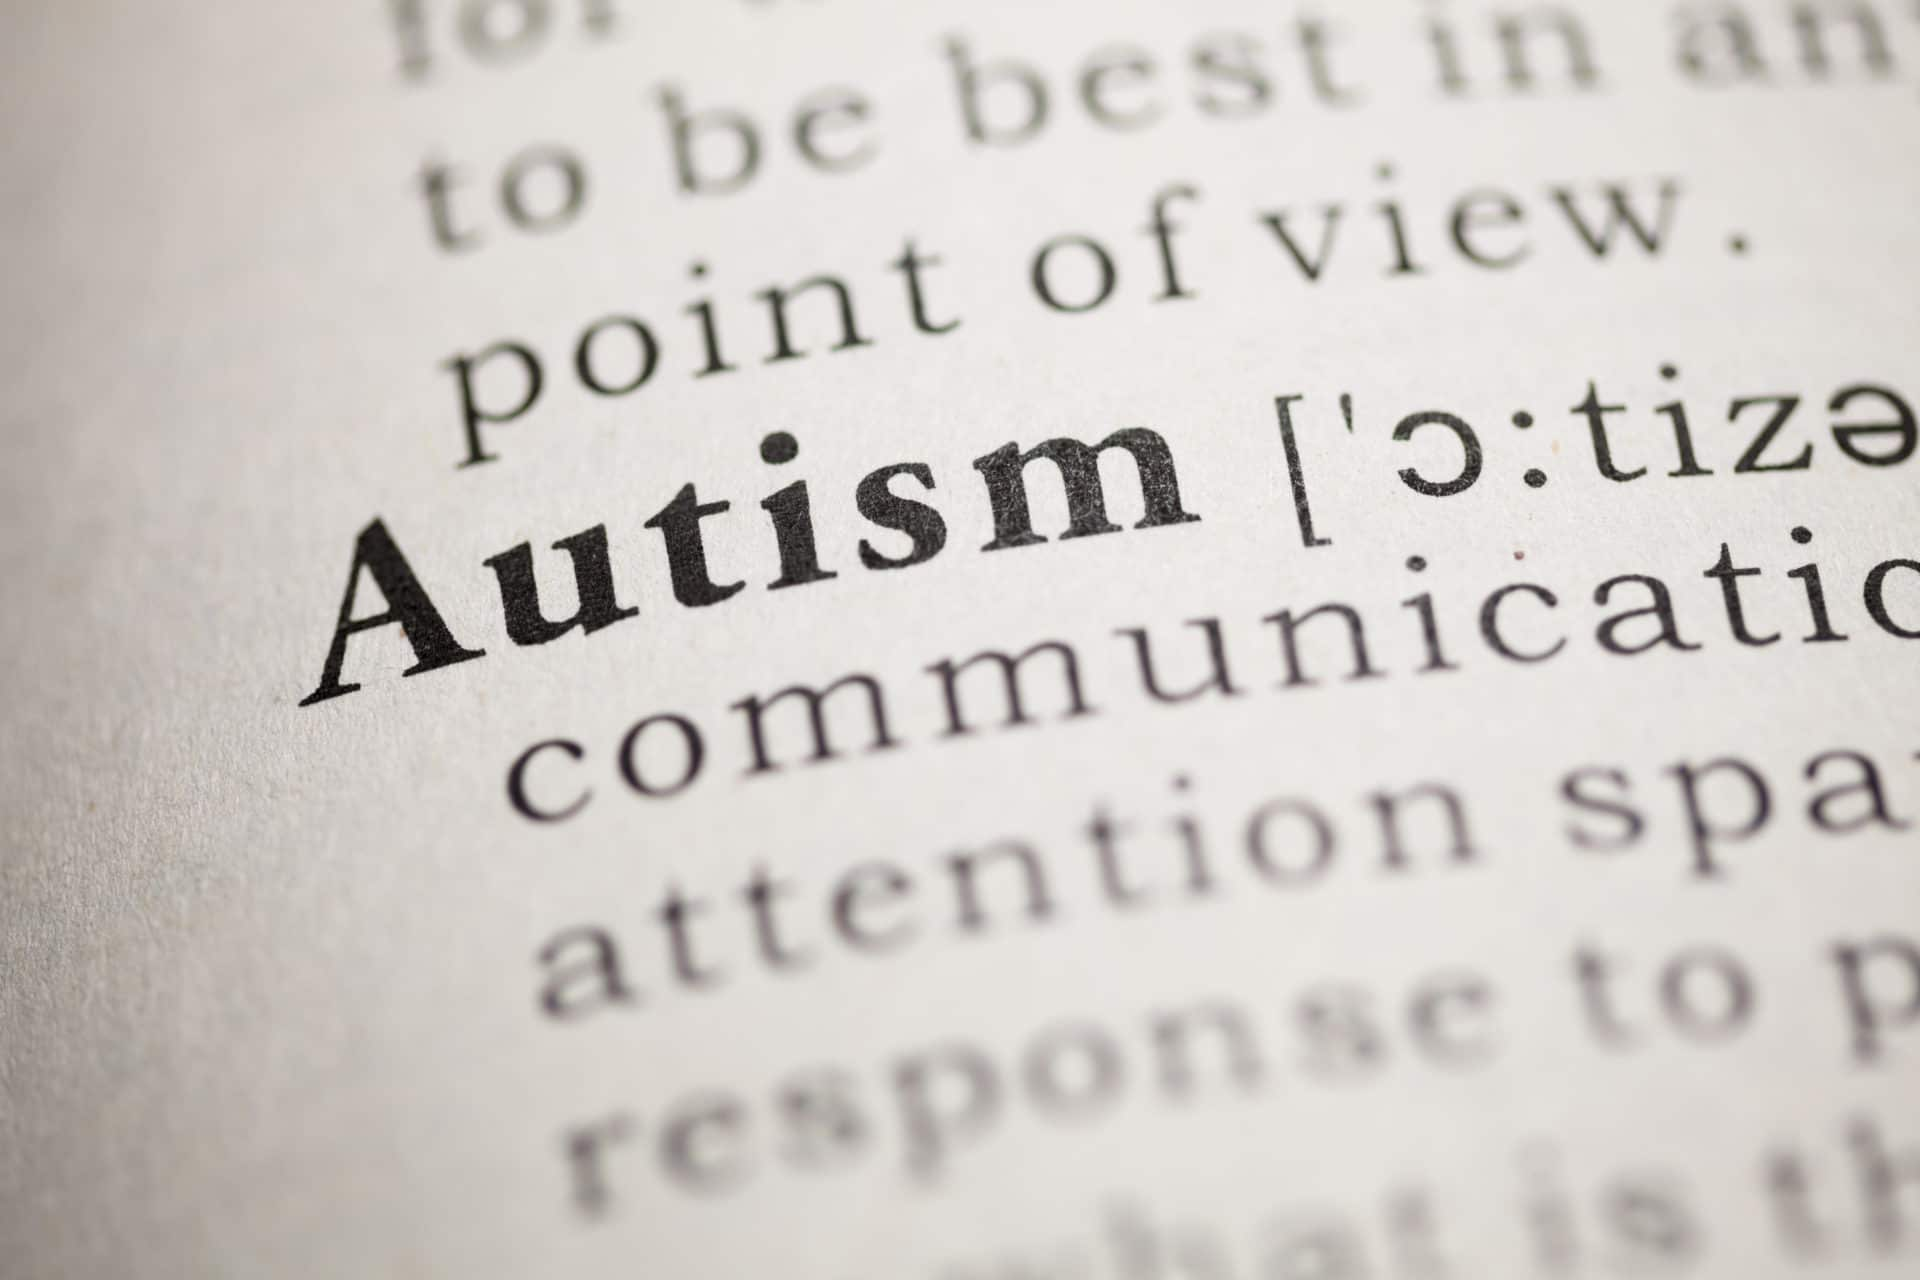 Understanding the levels of autism, especially Level 1 Autism by Defining the Traits and Behaviors of Autism Spectrum Disorder